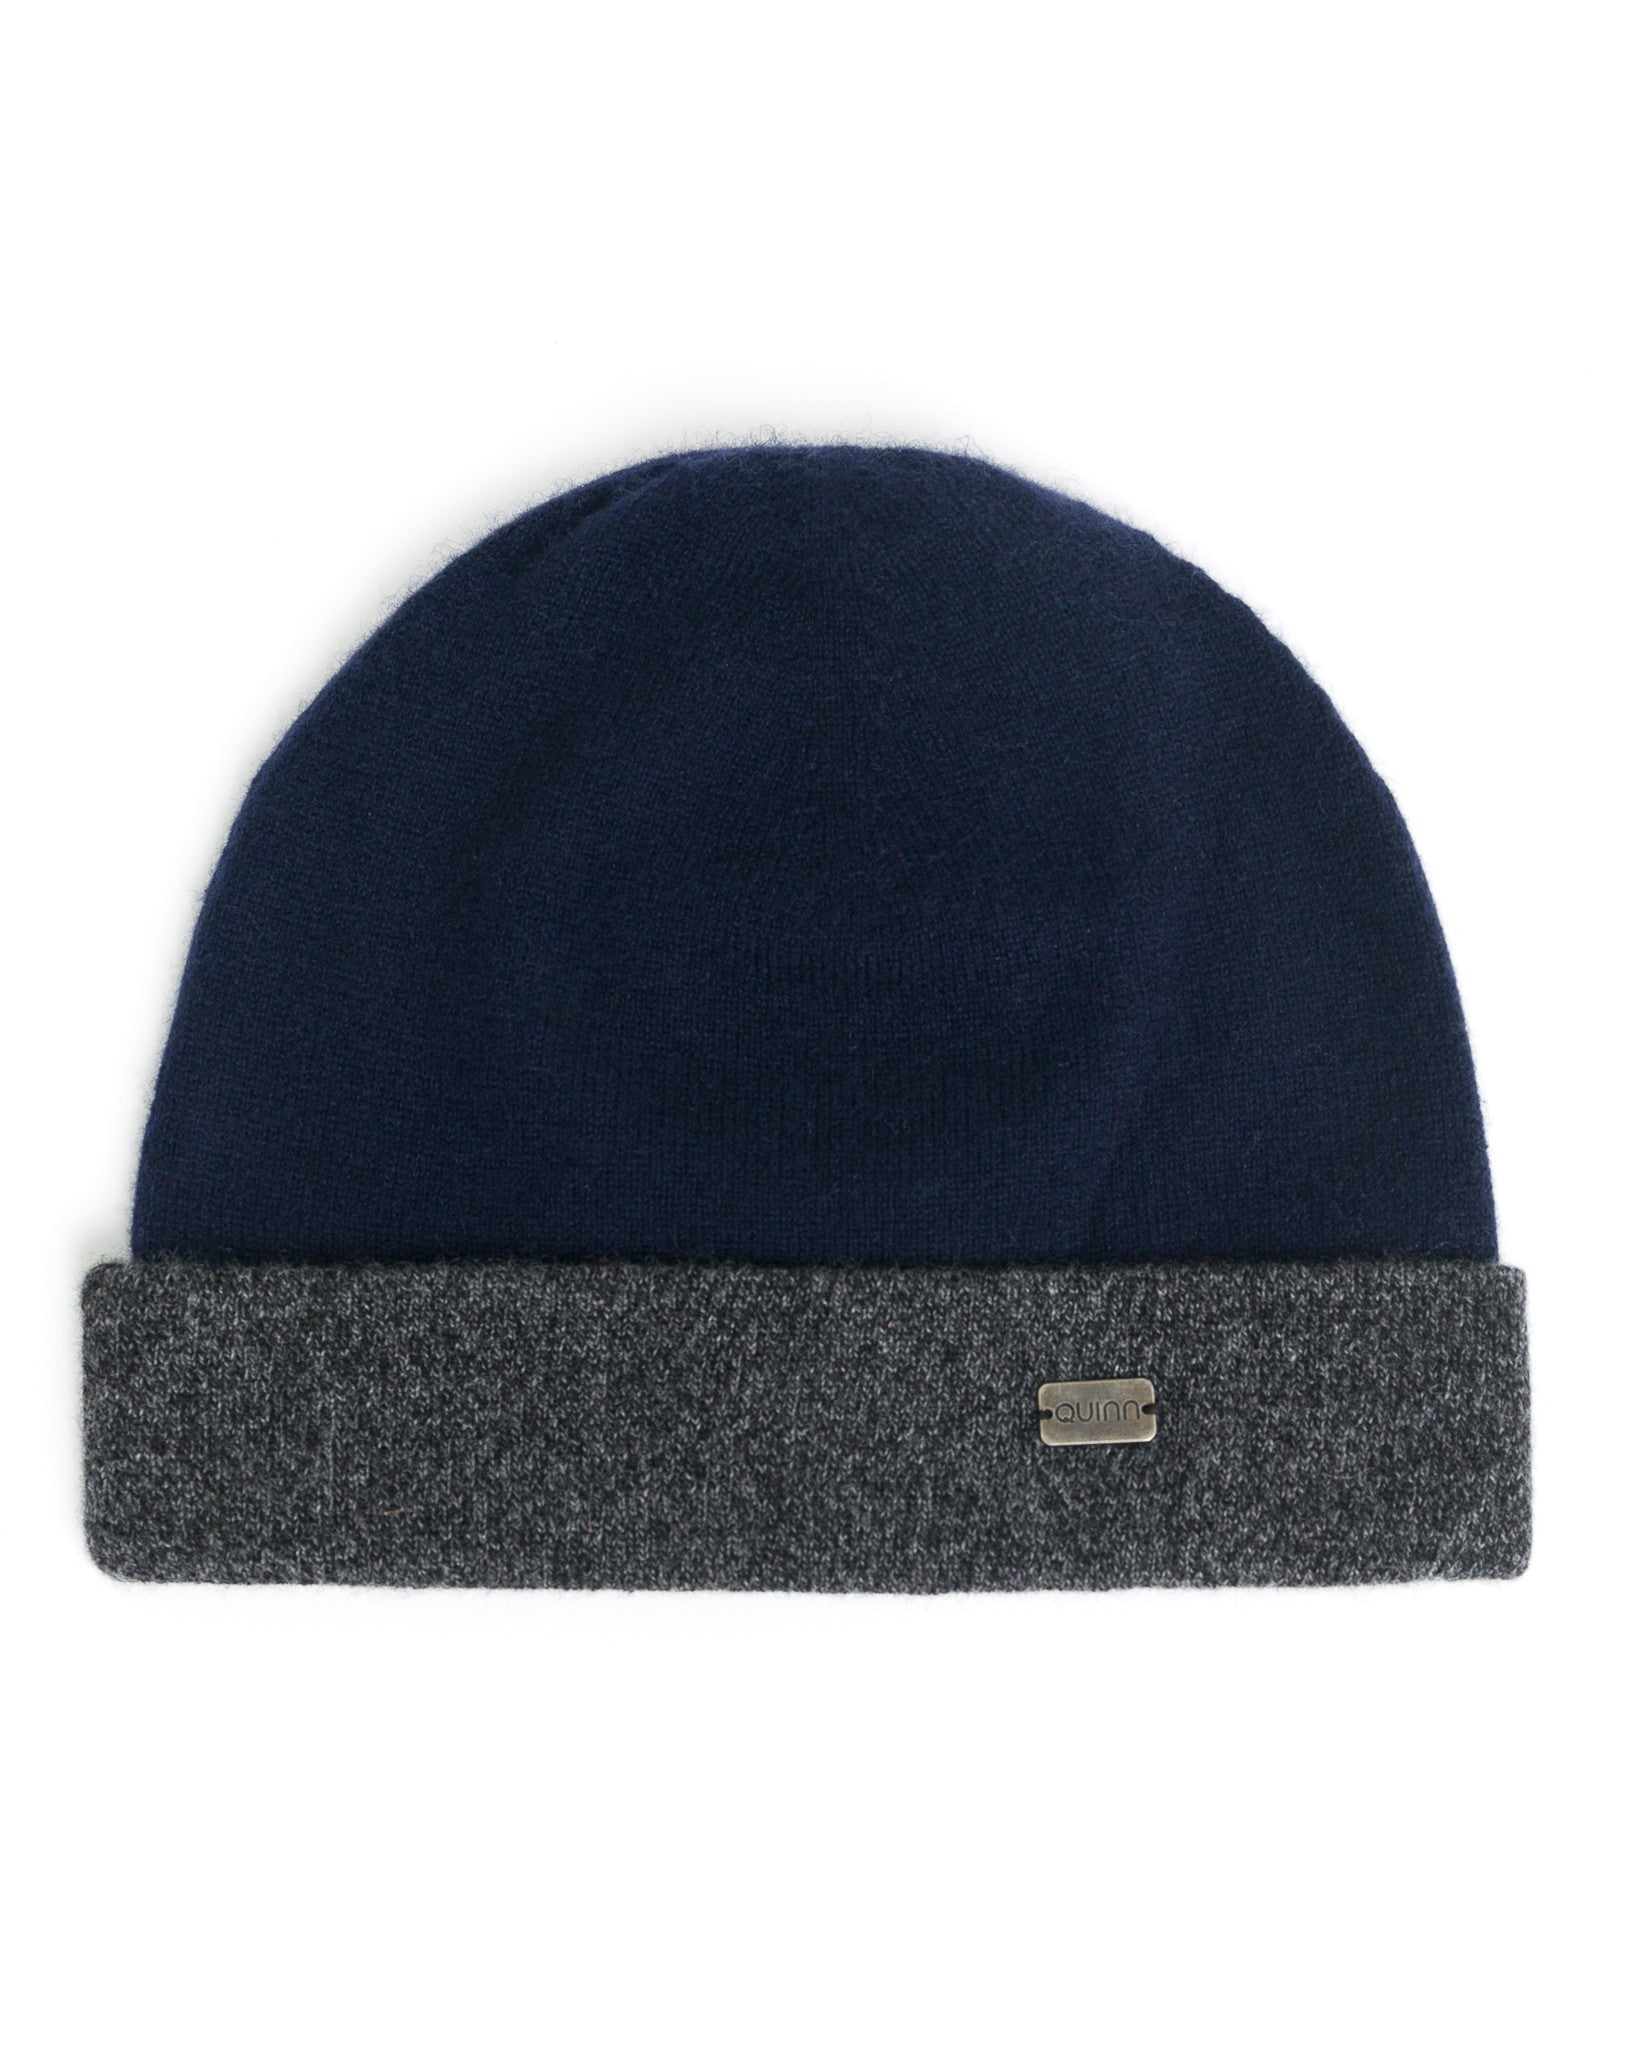 ACCESSORIES - Geneva Reversible Cashmere Hat